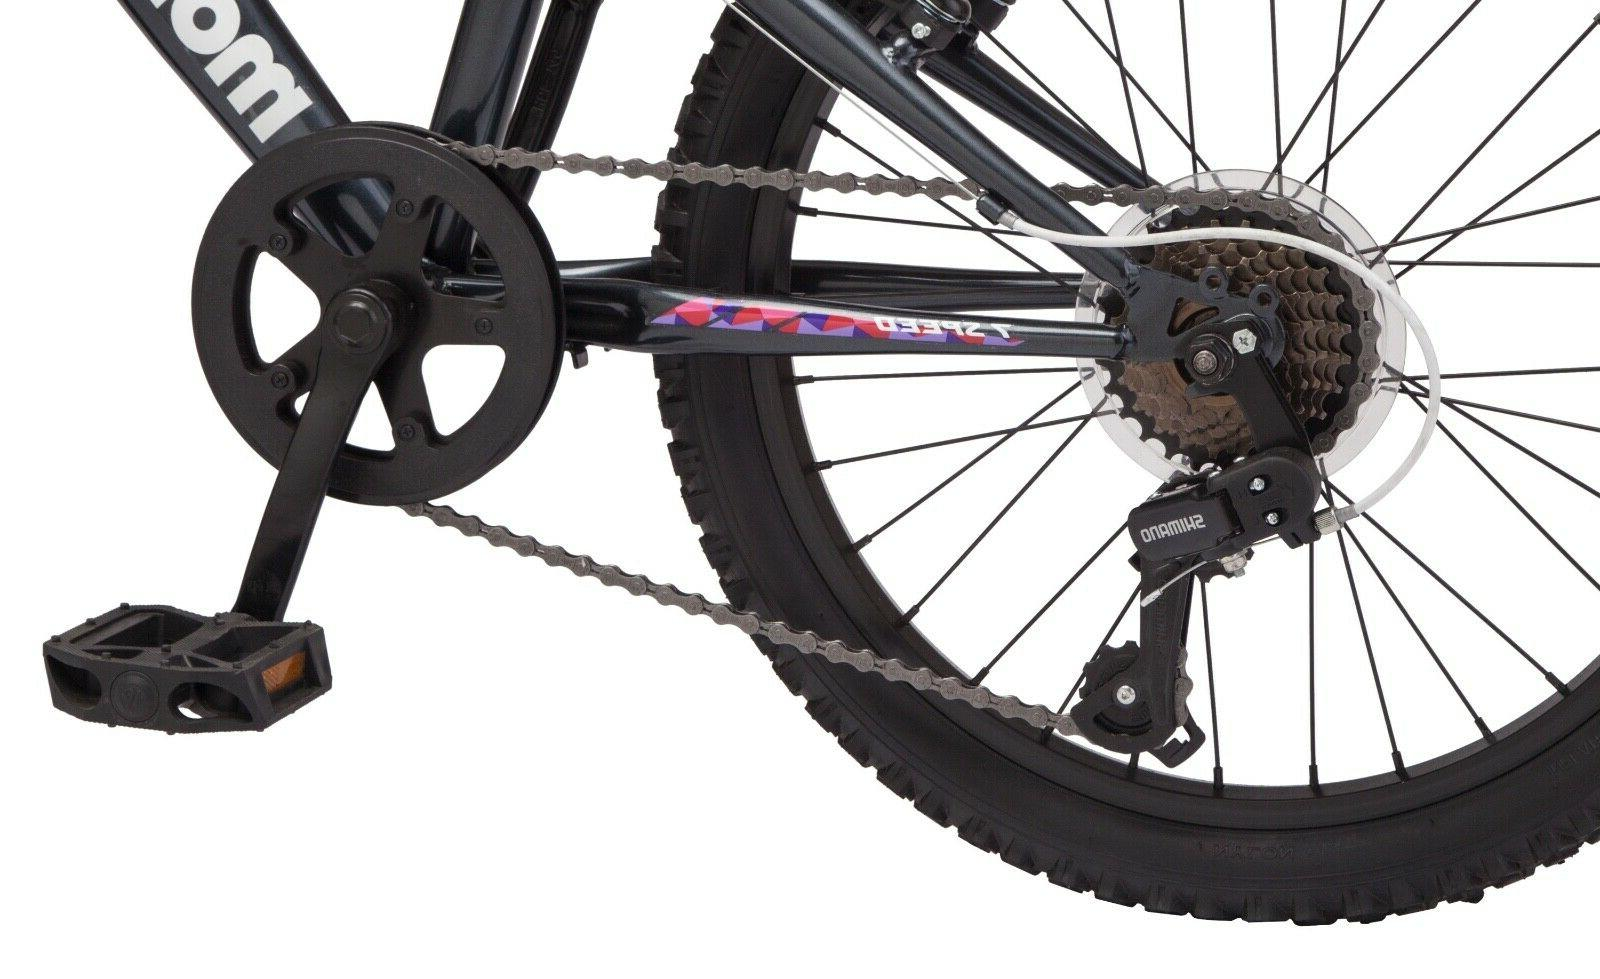 Mongoose Byte Mountain Bike, 20-inch 7 ages and